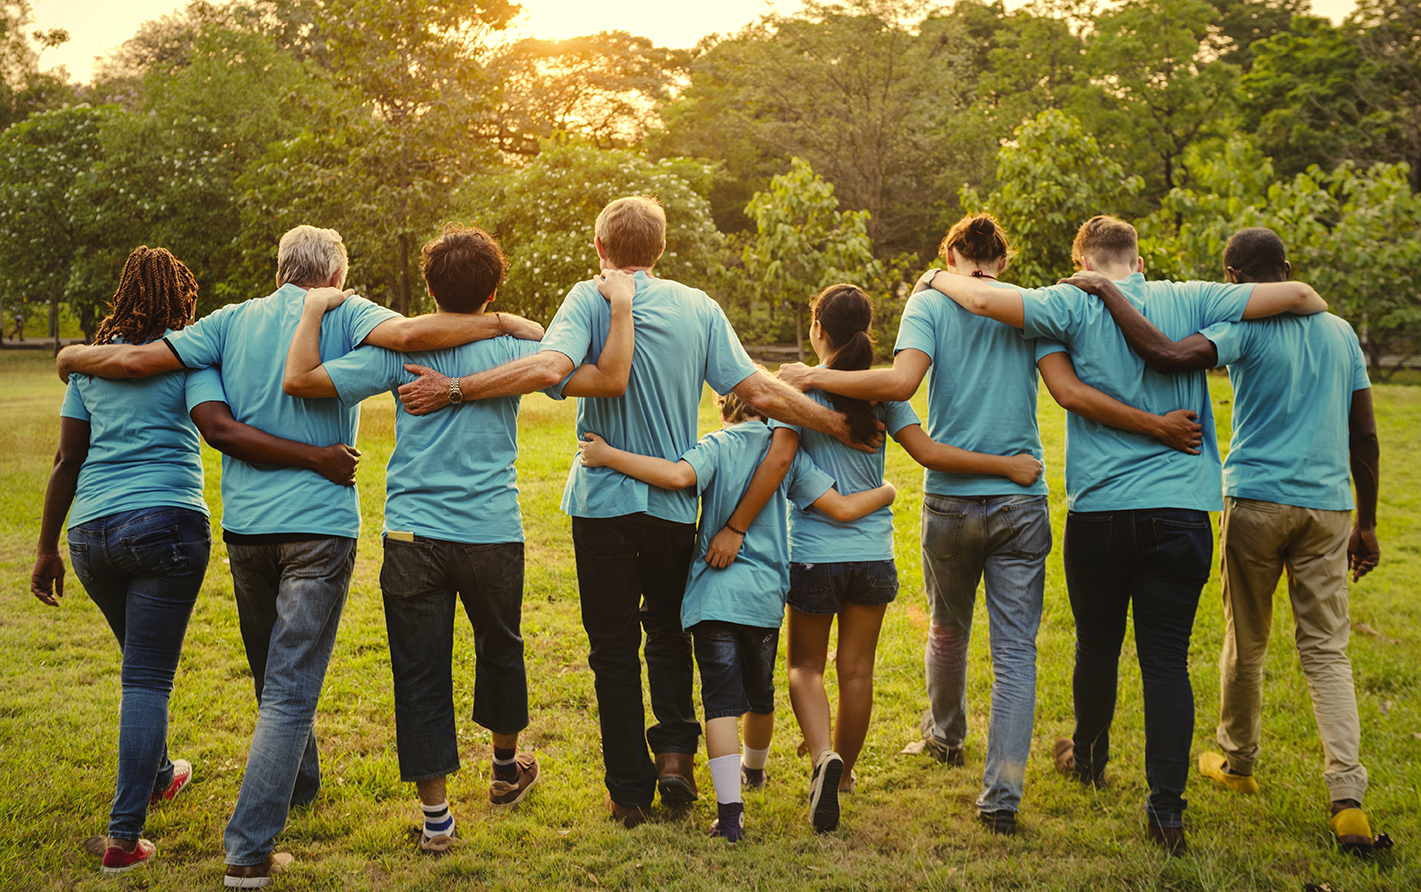 72-group-of-diversity-people-volunteen-arm-around-UDHZGYT.jpg